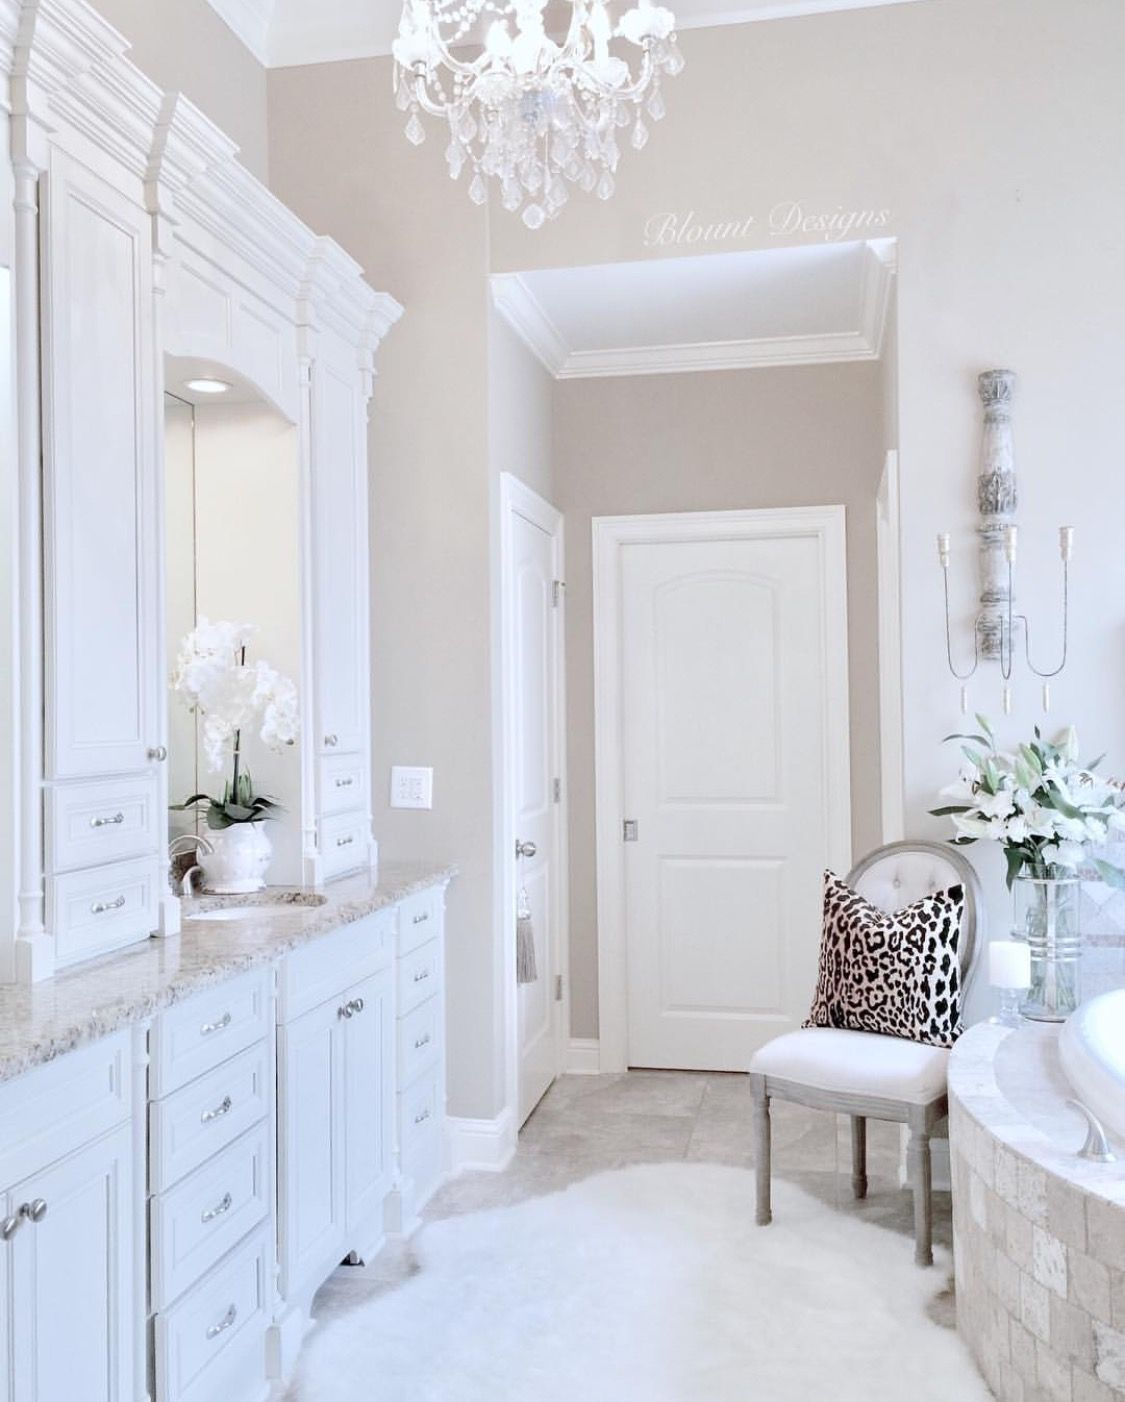 Bright White Home of Deborah Blount | Master suite | Pinterest ...